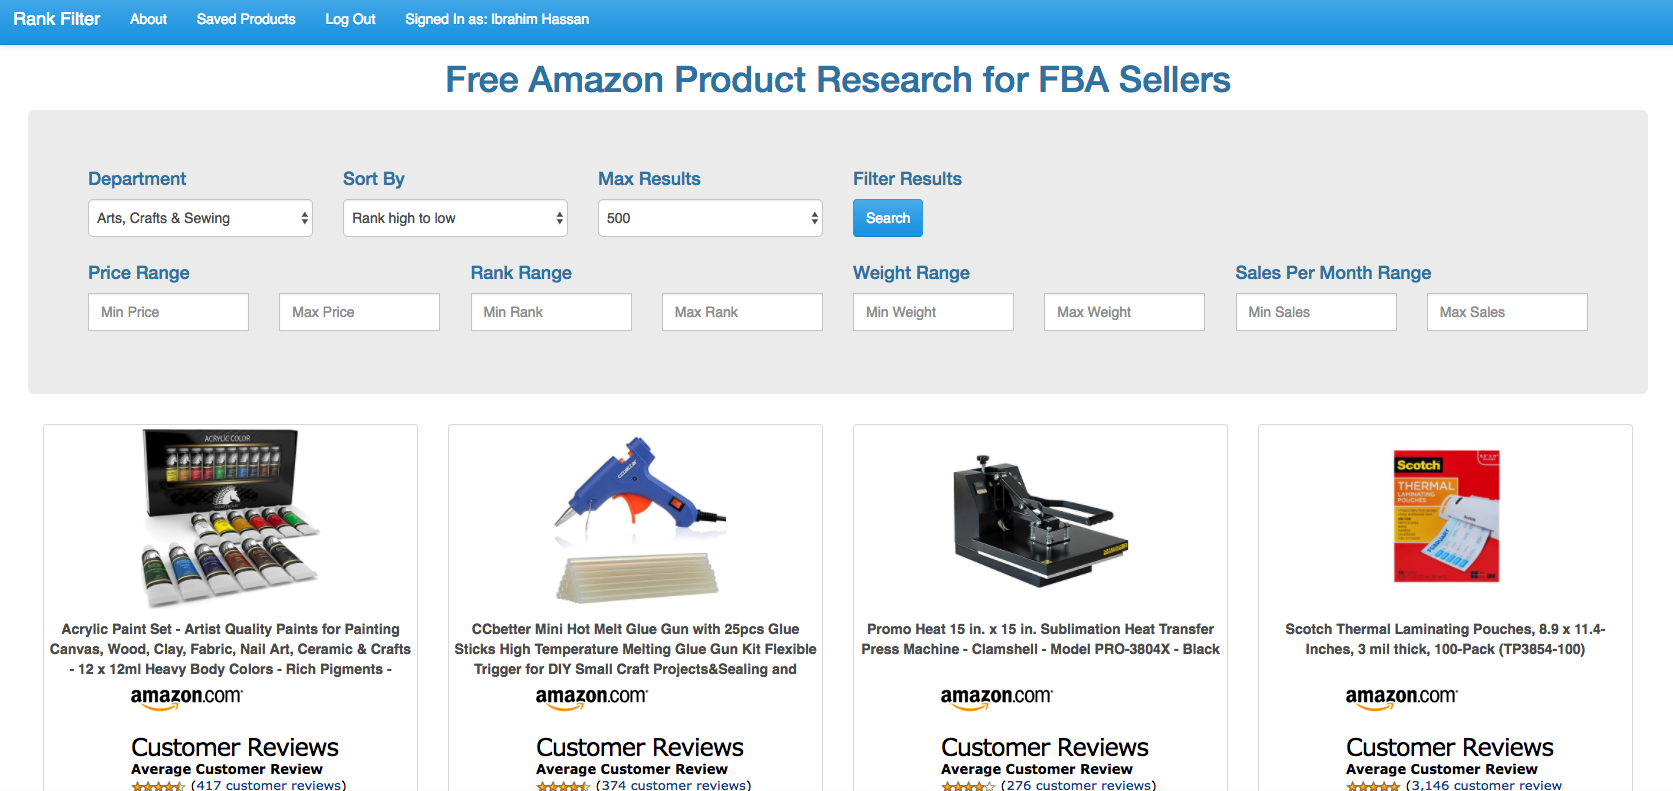 Free Amazon Product Research for FBA Sellers – Introducing Rankfilter.com